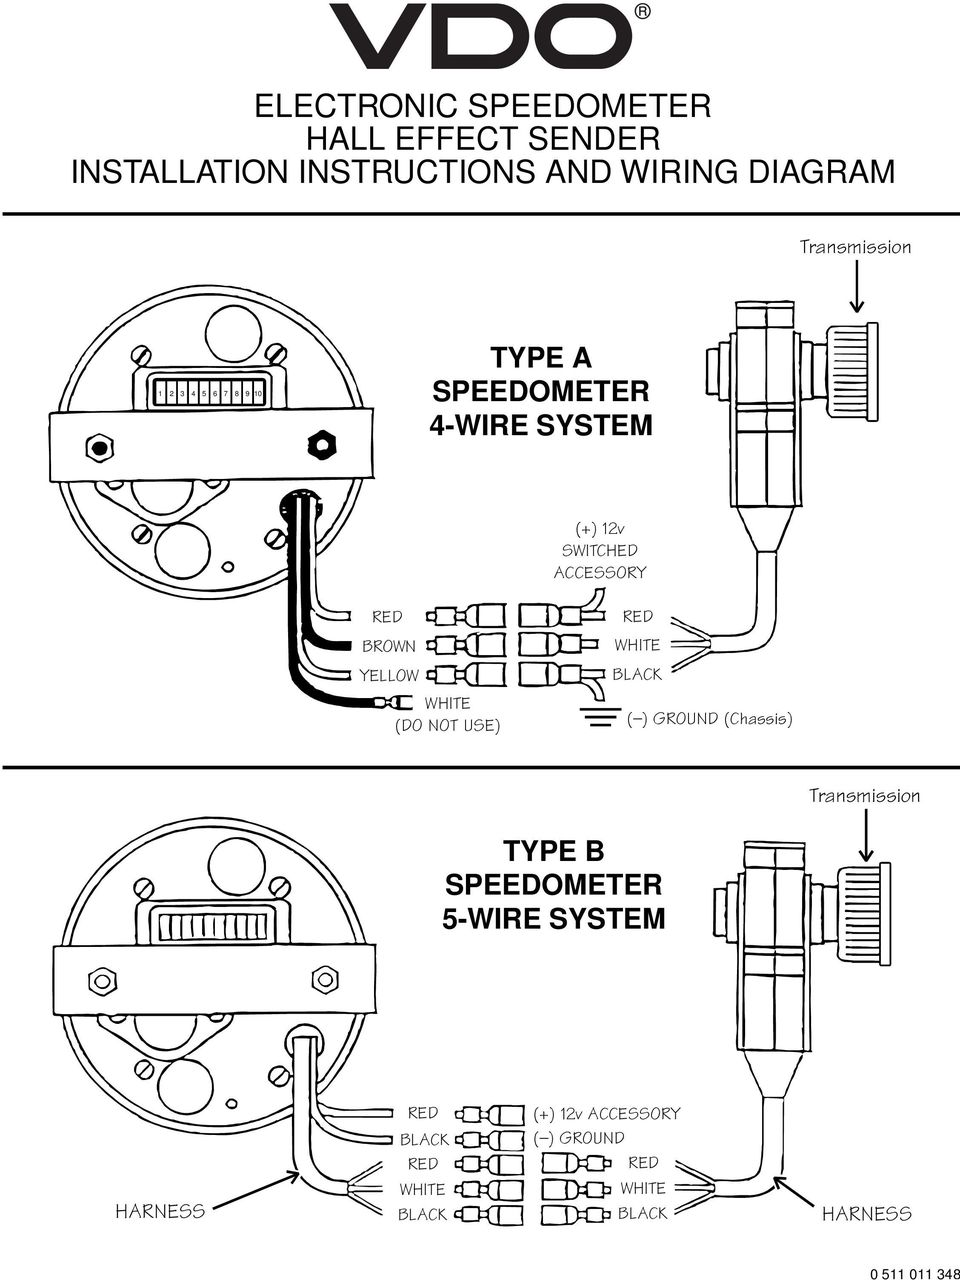 Sdometer Wiring Diagram - 17.12.combatarms-game.de • on 1988 chevy wheels, 1988 chevy engine diagram, 1988 chevy firing order, 1988 chevy horn, 1988 chevy trailer plug, 1988 chevy steering, 1988 chevy motor, 88 chevy wire diagram, 1988 chevy engine swap, 1988 chevy distributor, 1988 chevy 454 engine, 1988 chevy headlights, 1988 chevy radio, 1988 chevy s10 blazer wiring, 1988 chevy speedometer, 1988 chevy fuel pump, 1988 chevy electrical system, 1988 chevy parts diagram, 1988 chevy coil wiring, 1988 chevy engine wiring,